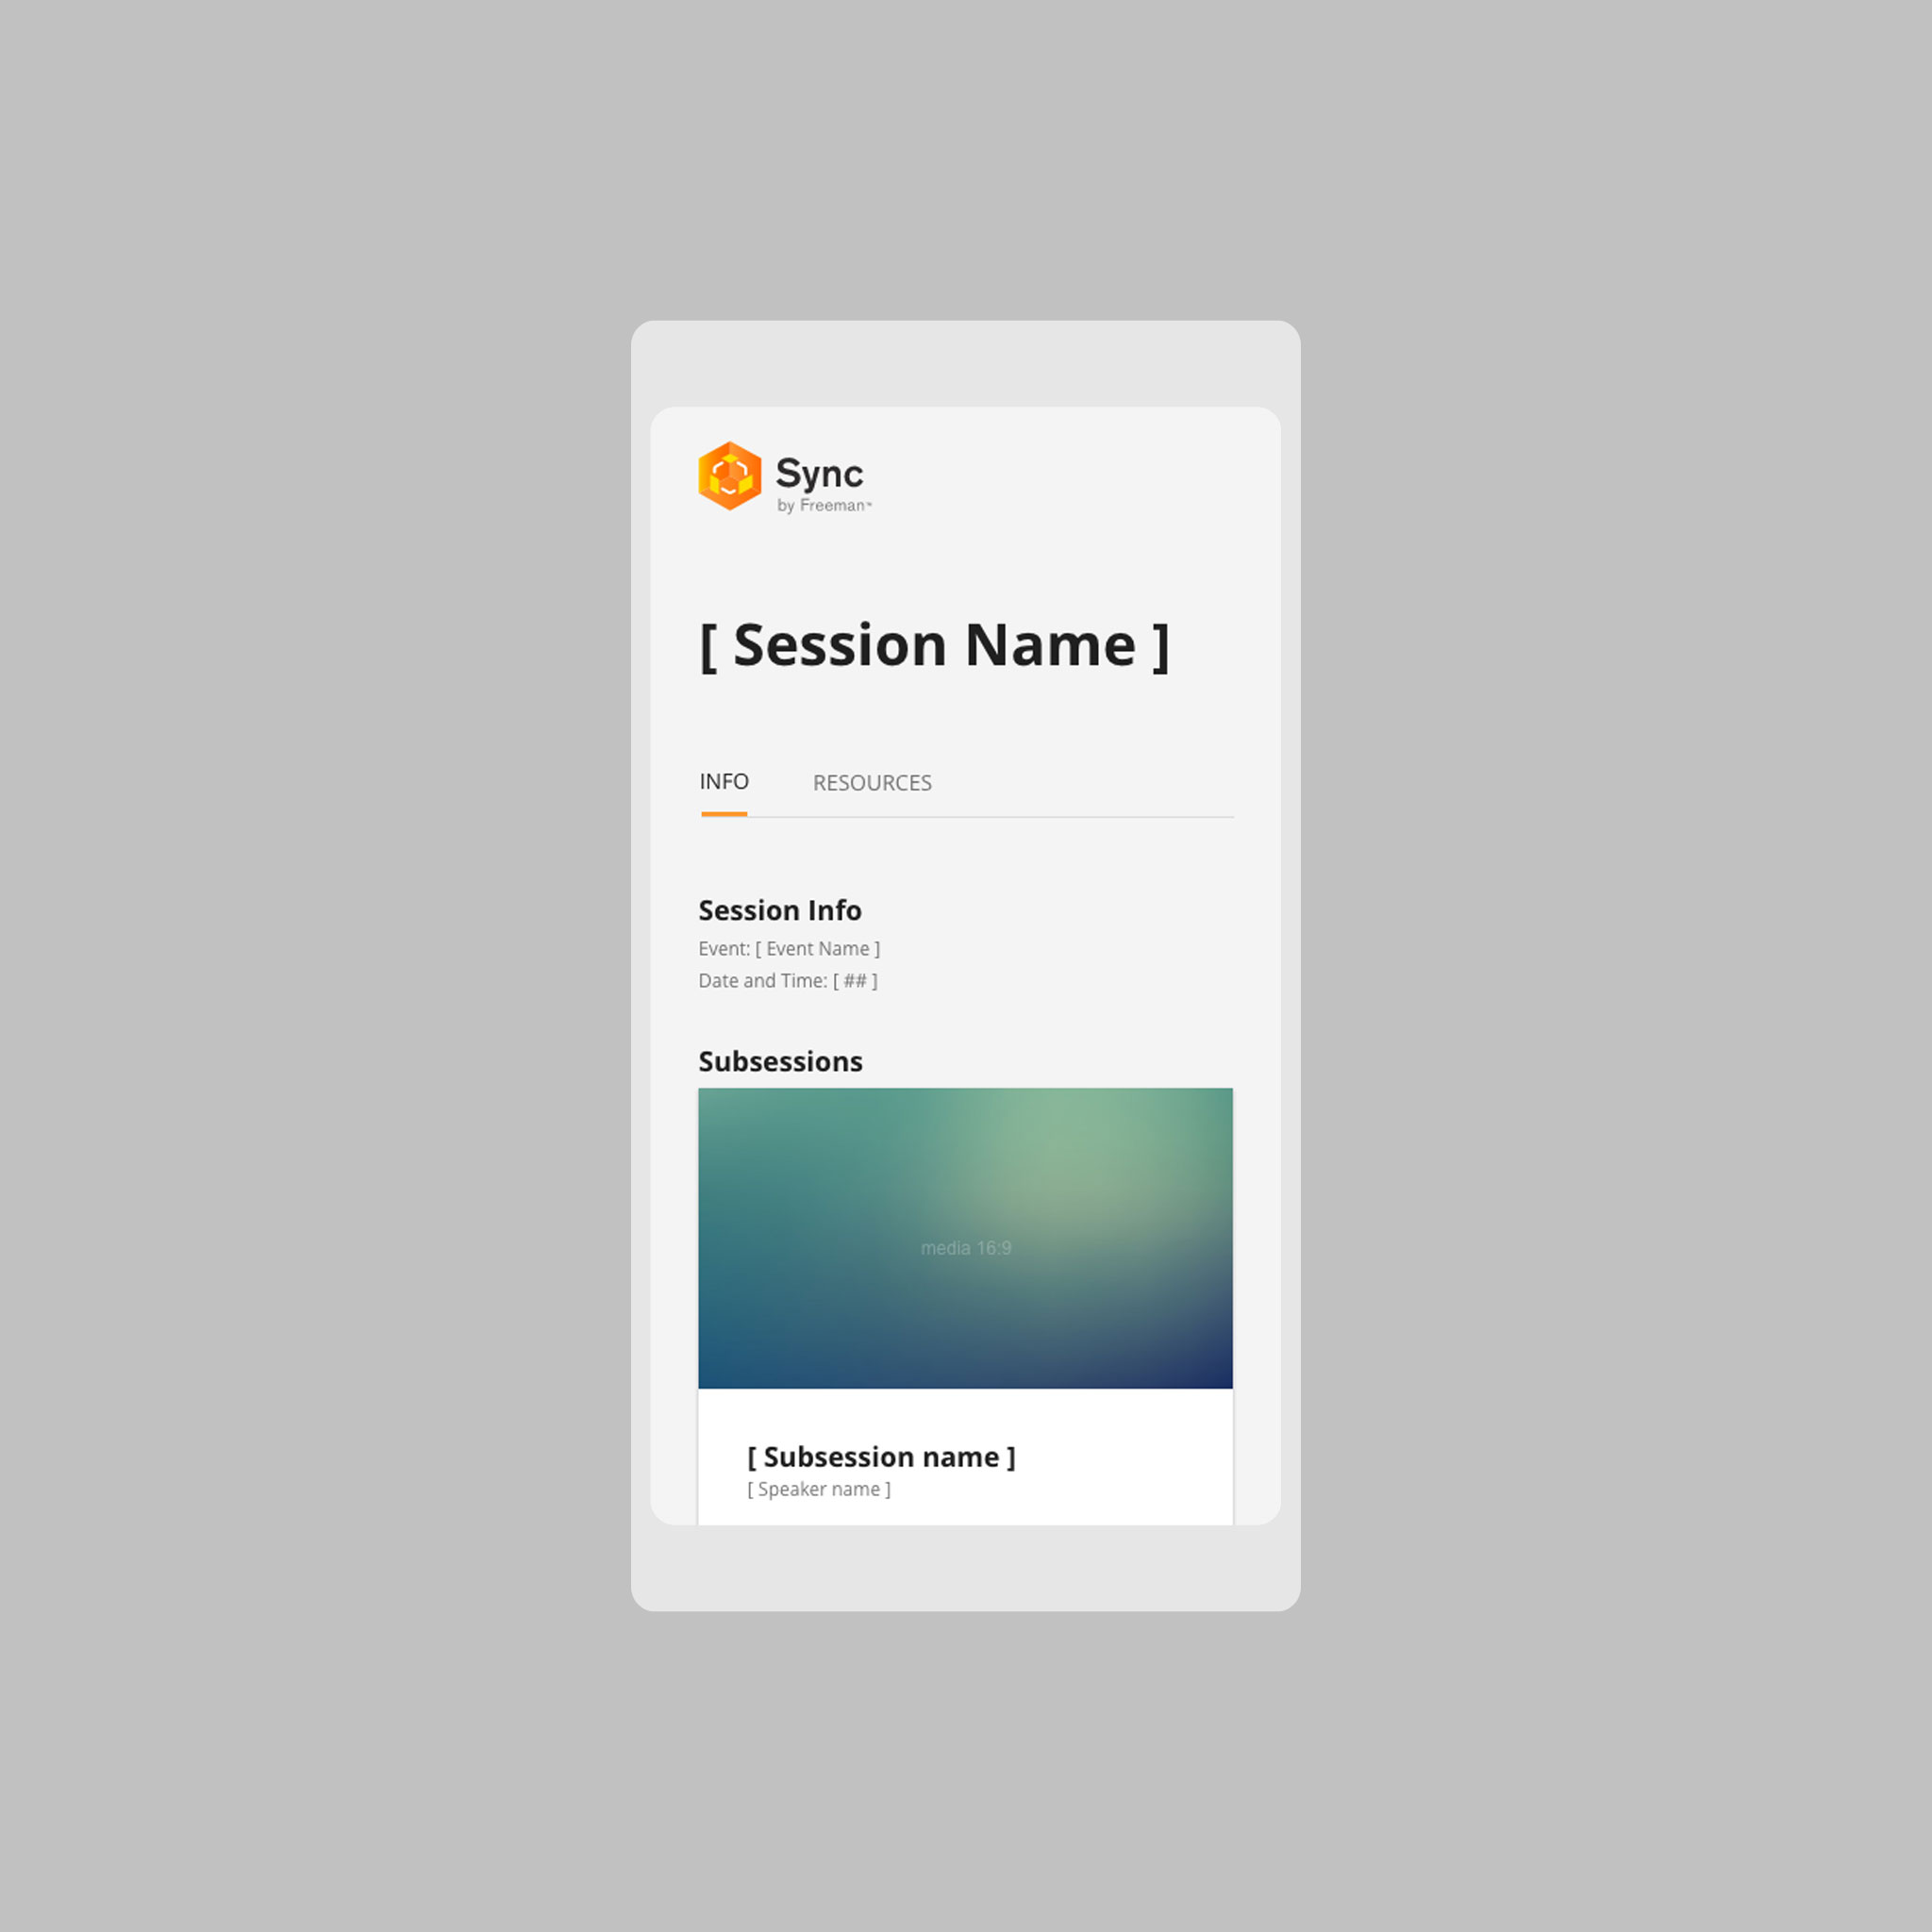 A mock-up of the Sync Session Info page.